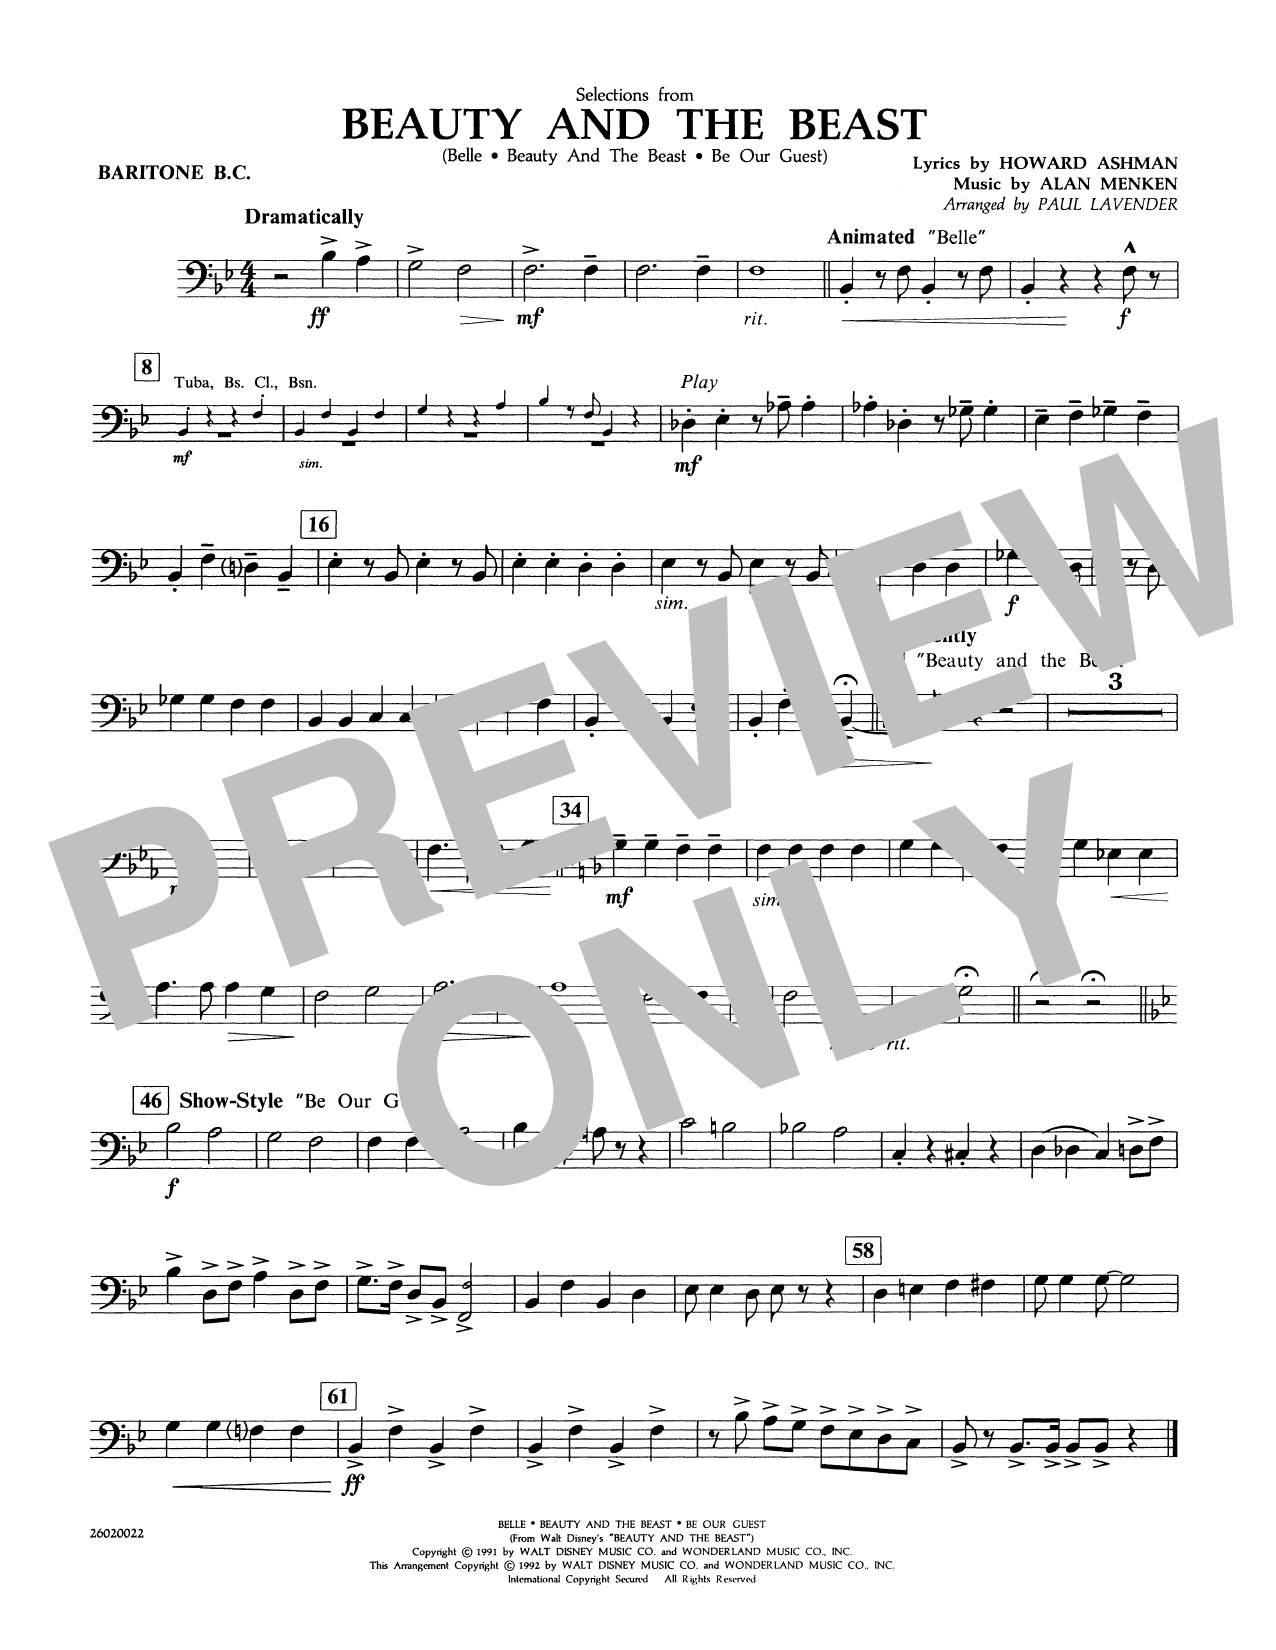 Selections from Beauty and the Beast - Baritone B.C. Sheet Music